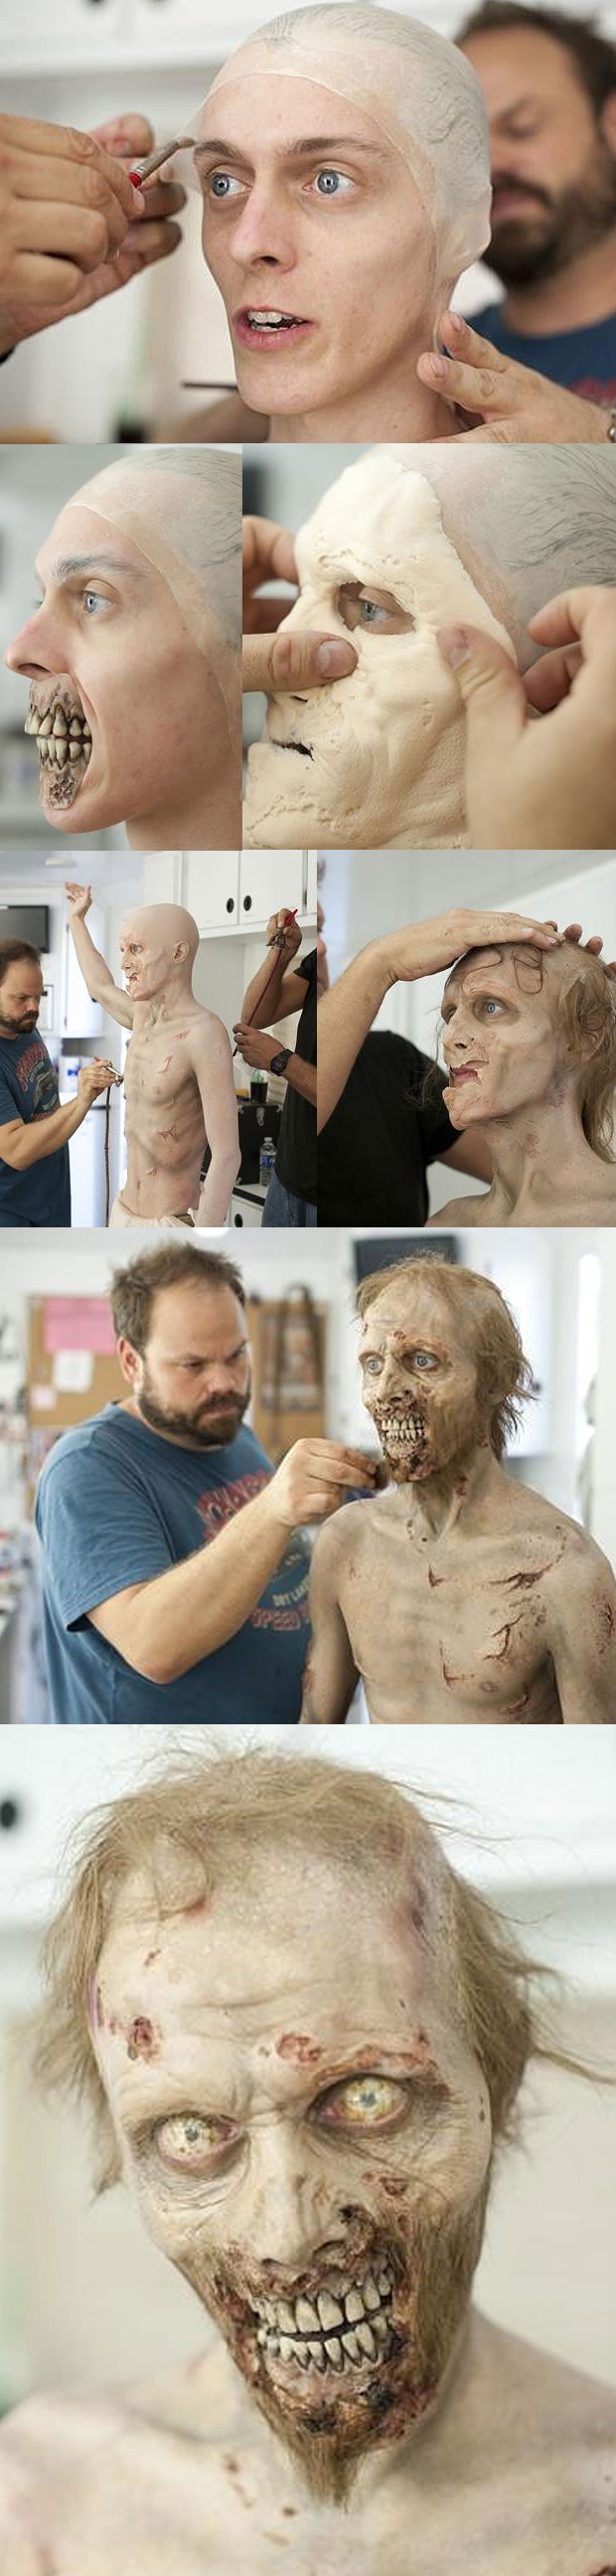 Zombie Costume   Make Up-  Wow! I would be a little shocked to see this! Realistic!